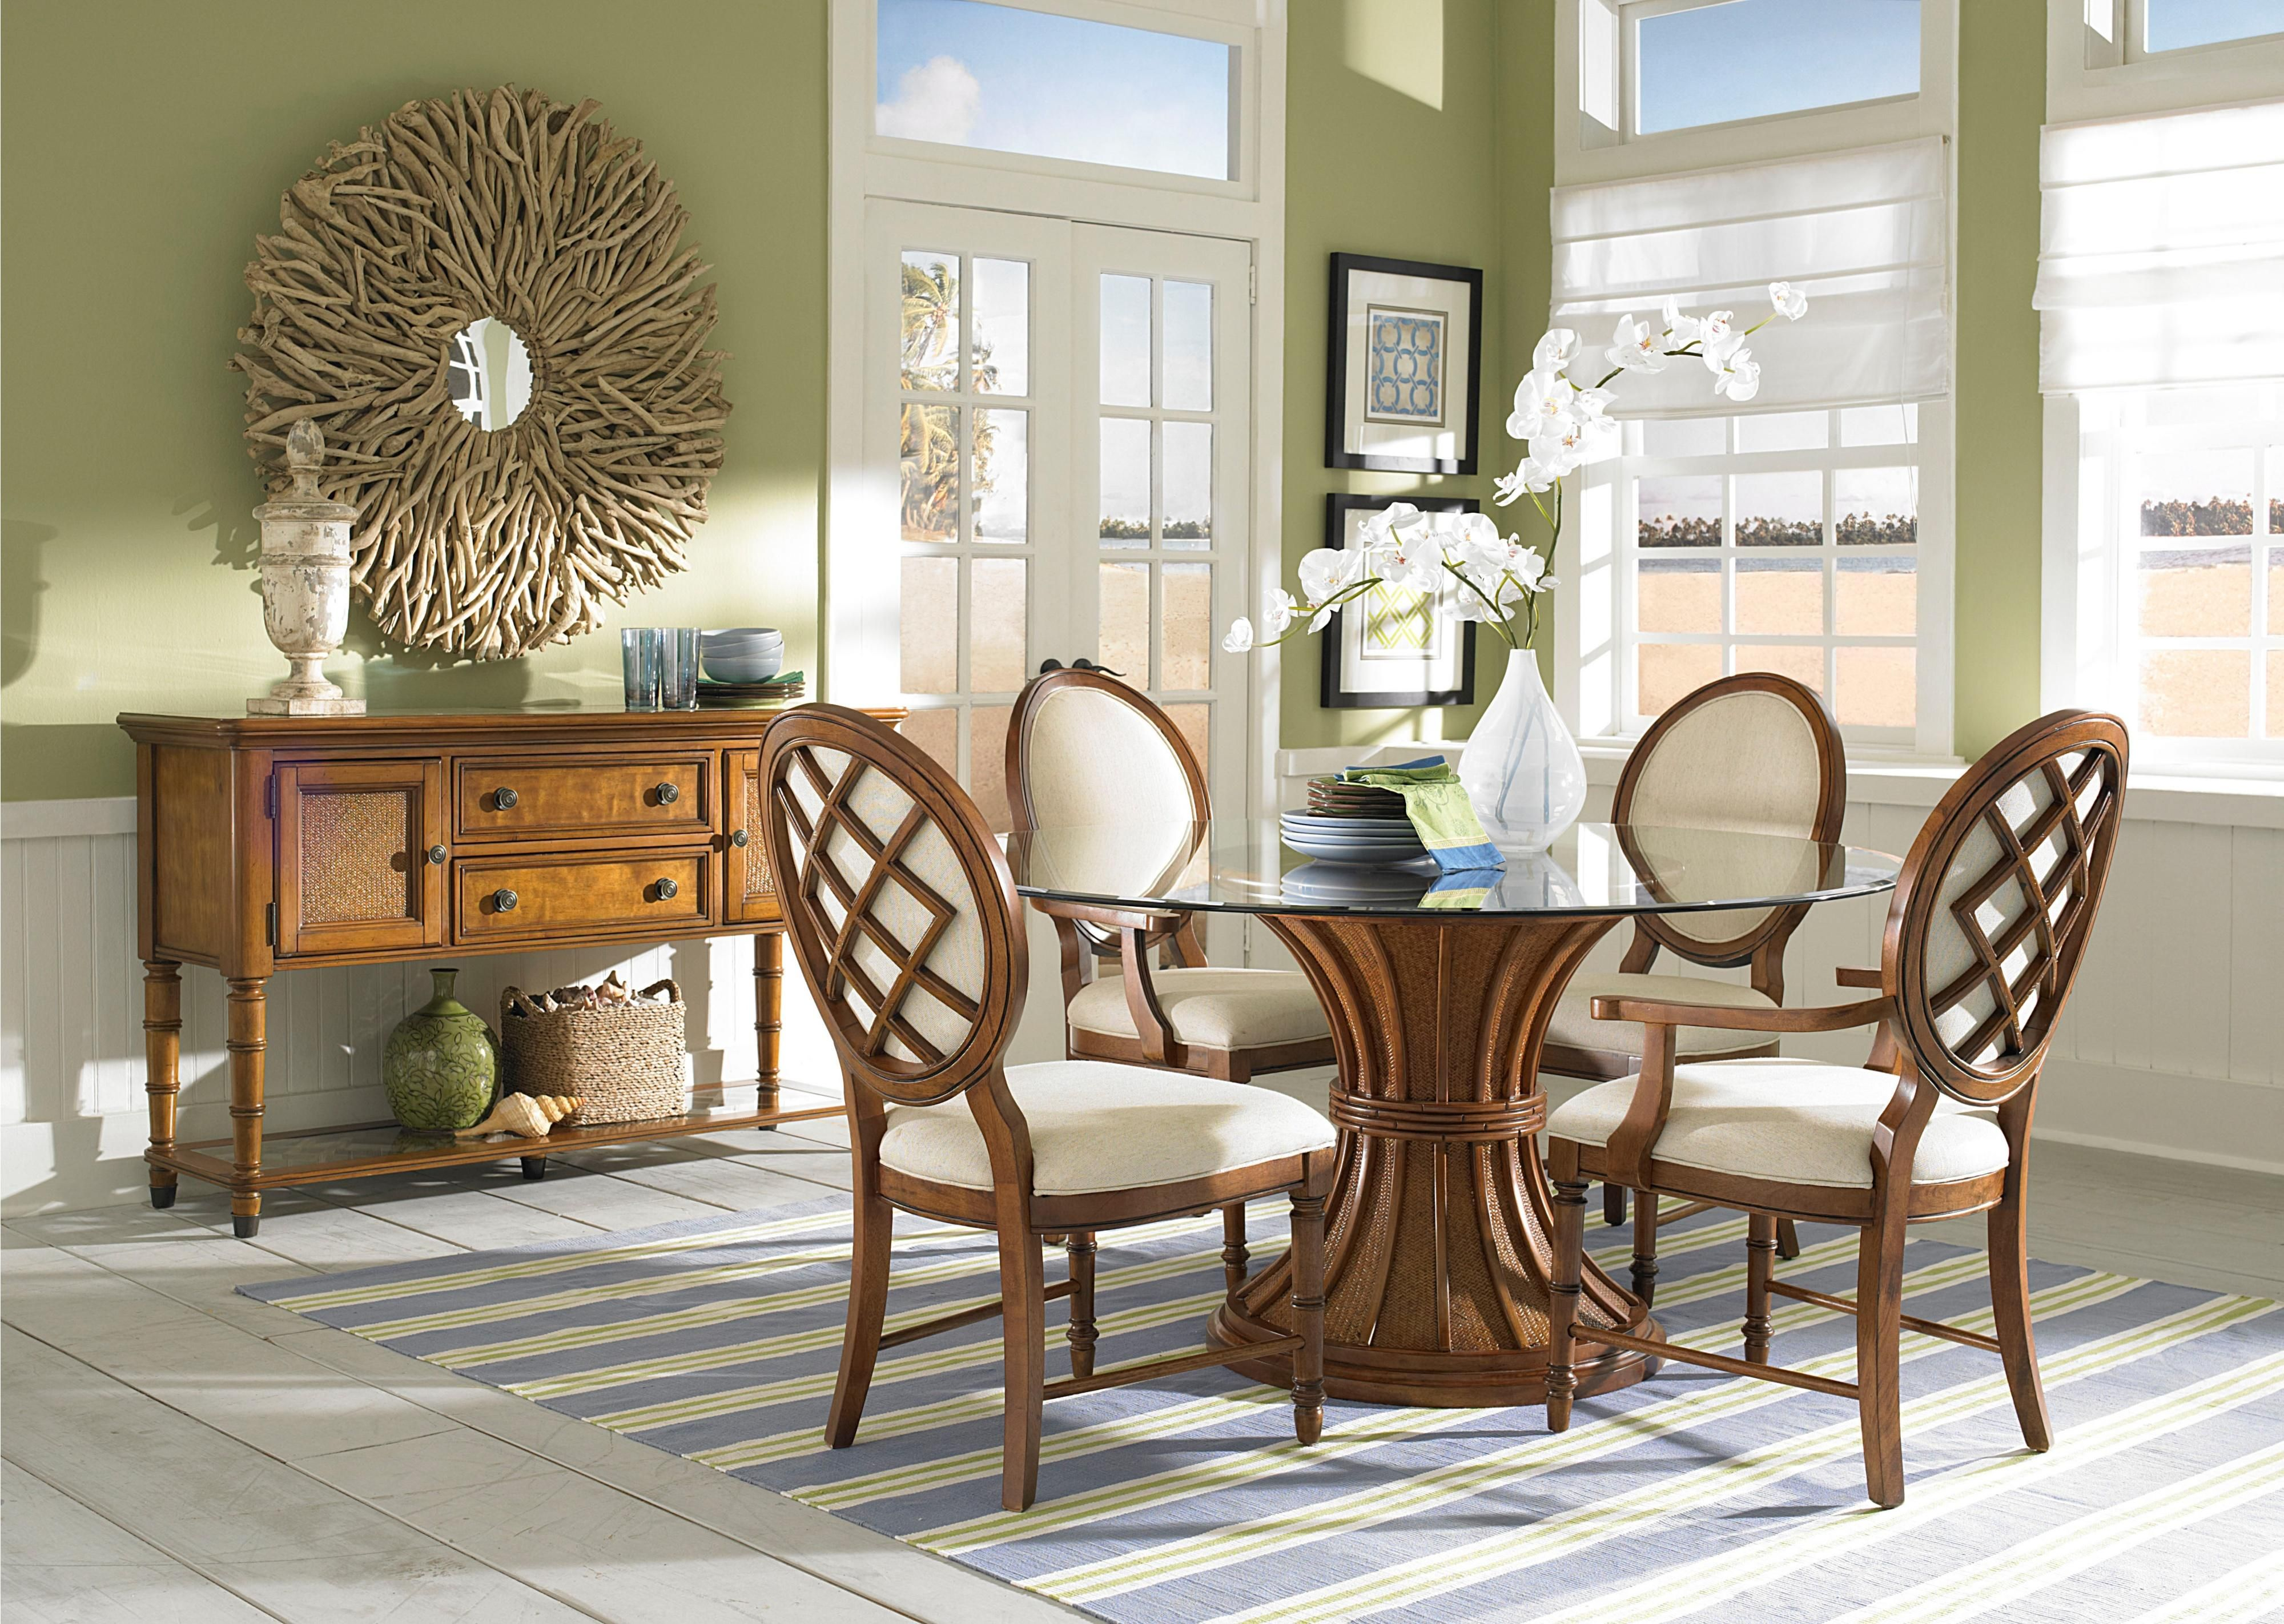 Merveilleux Furniture Round Glass Top Dining Table With Round Brown Wooden Base  Connected By Brown Wooden Dining Chairs On The Rug: Mesmerizing Dining Room  Furniture ...